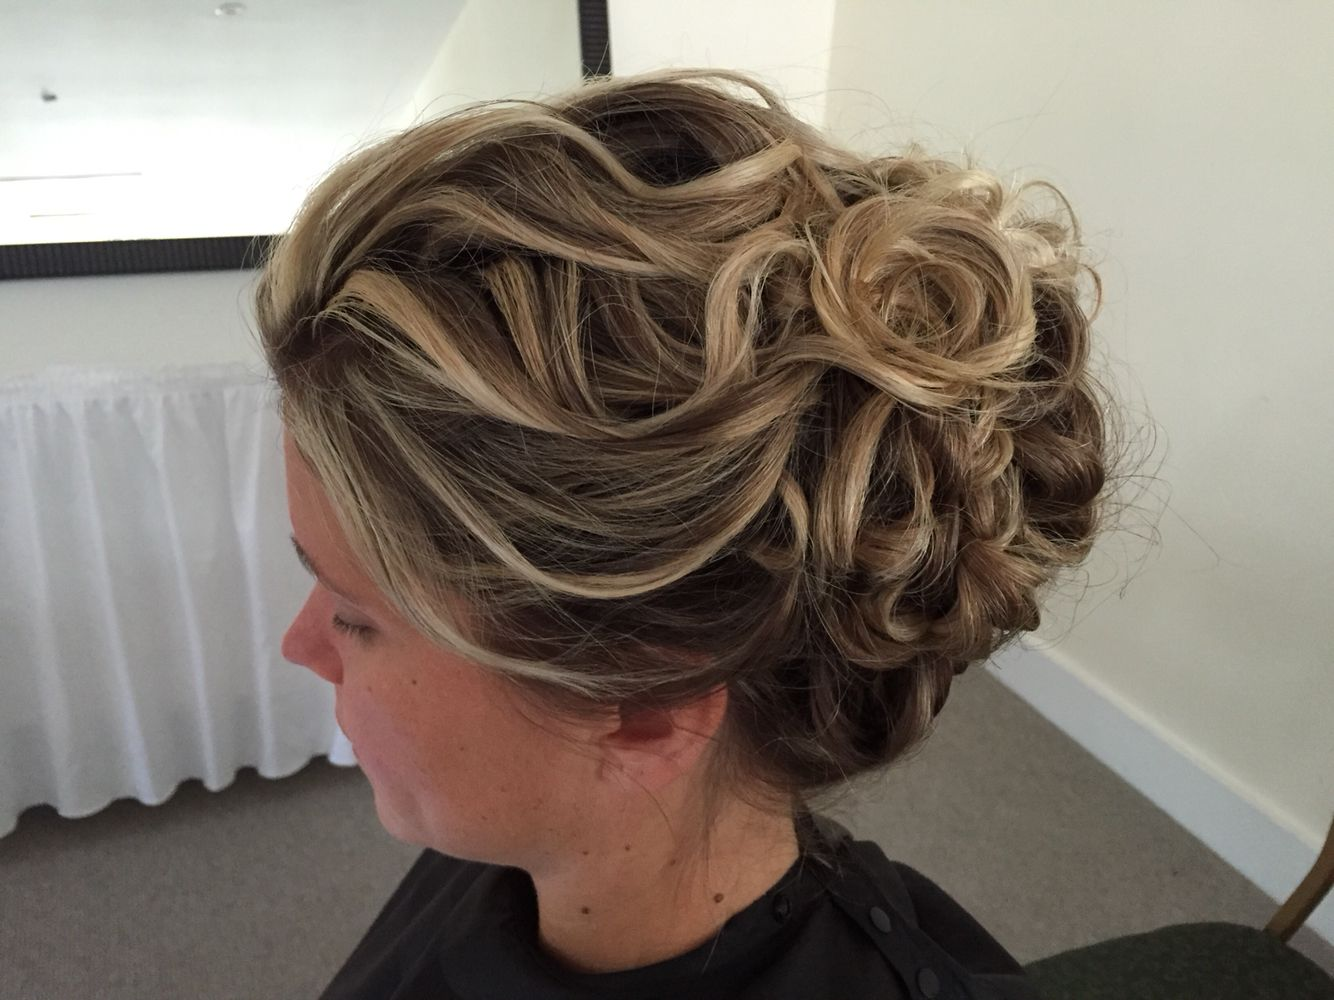 Lots of curls for this bridesmaid updo